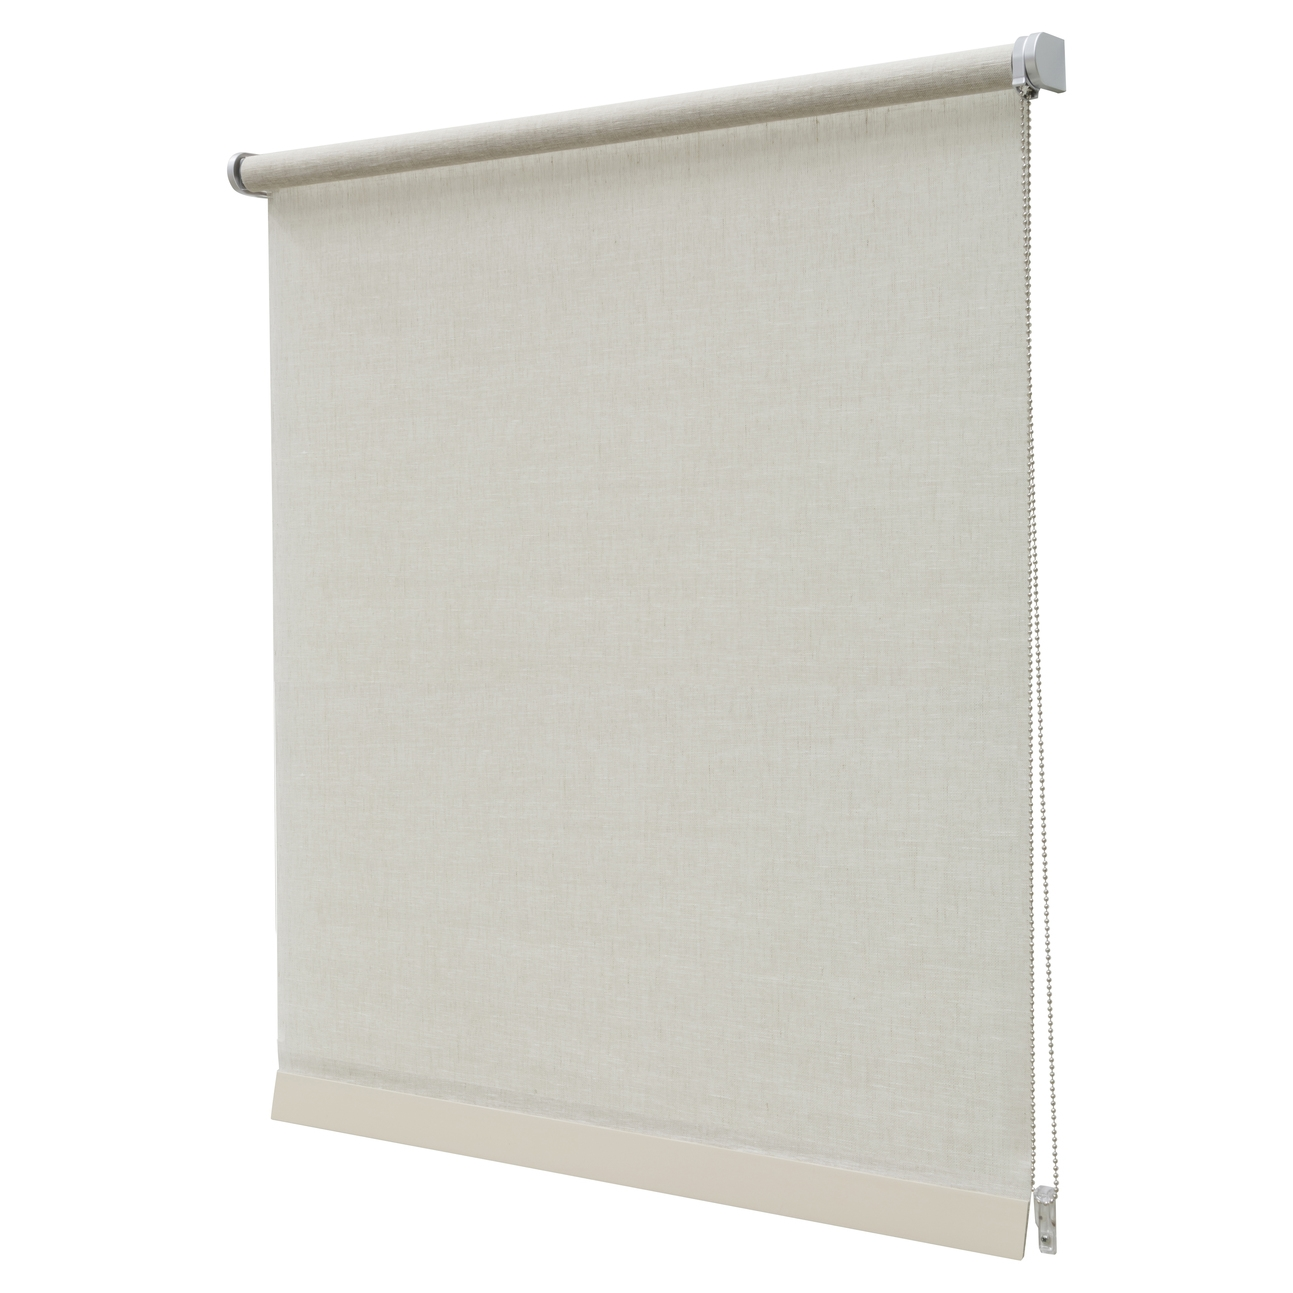 Offers On Luxury Roller Blinds Rough Blend Linen Look Cream Throughout Linen Roller Blinds (Image 10 of 15)